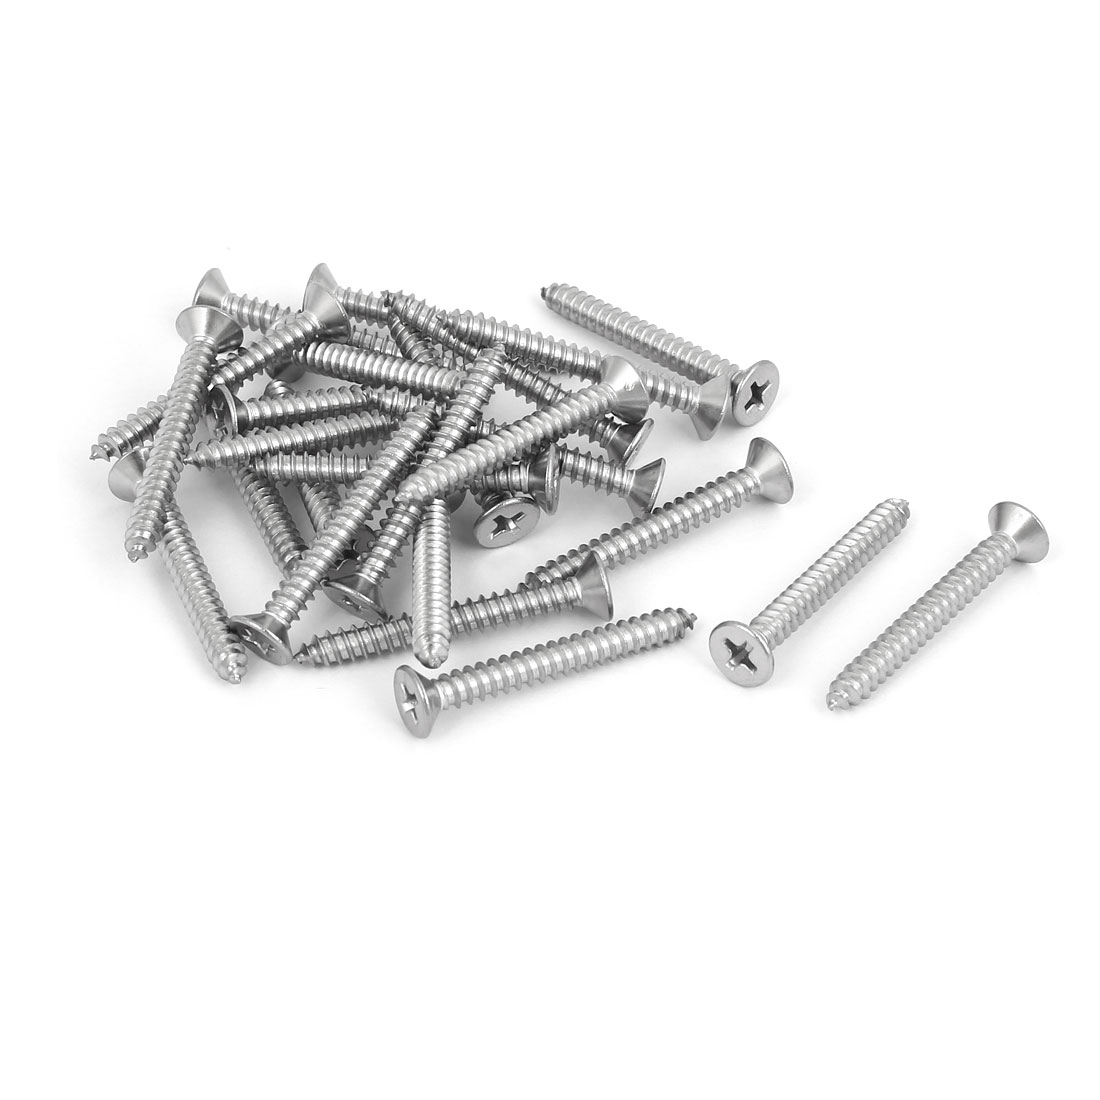 25 Pcs M4.2x35mm 316 Stainless Steel Flat Head Phillips Self Tapping Screws